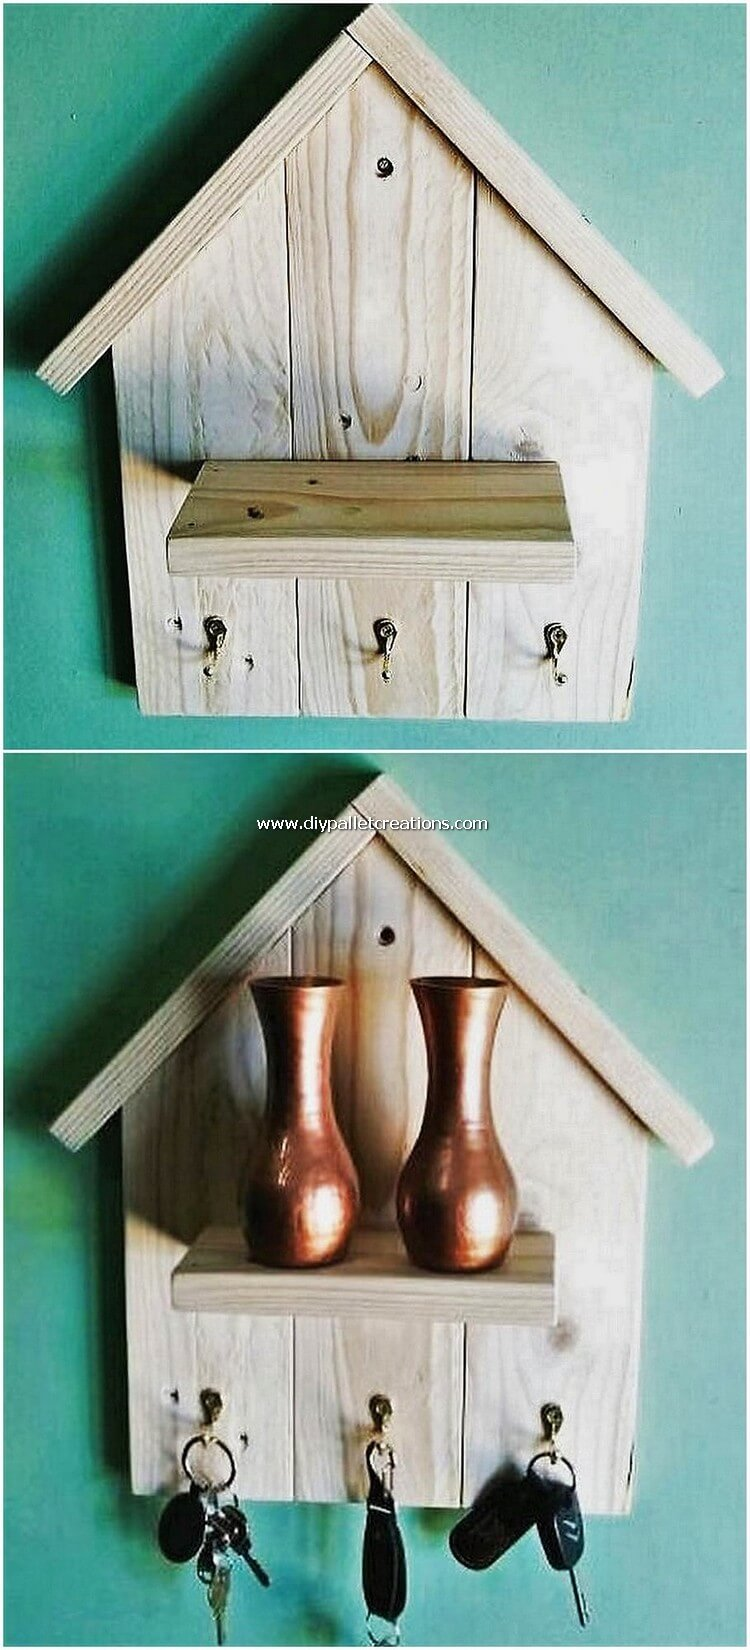 Pallet Wall Shelf with Key Holder